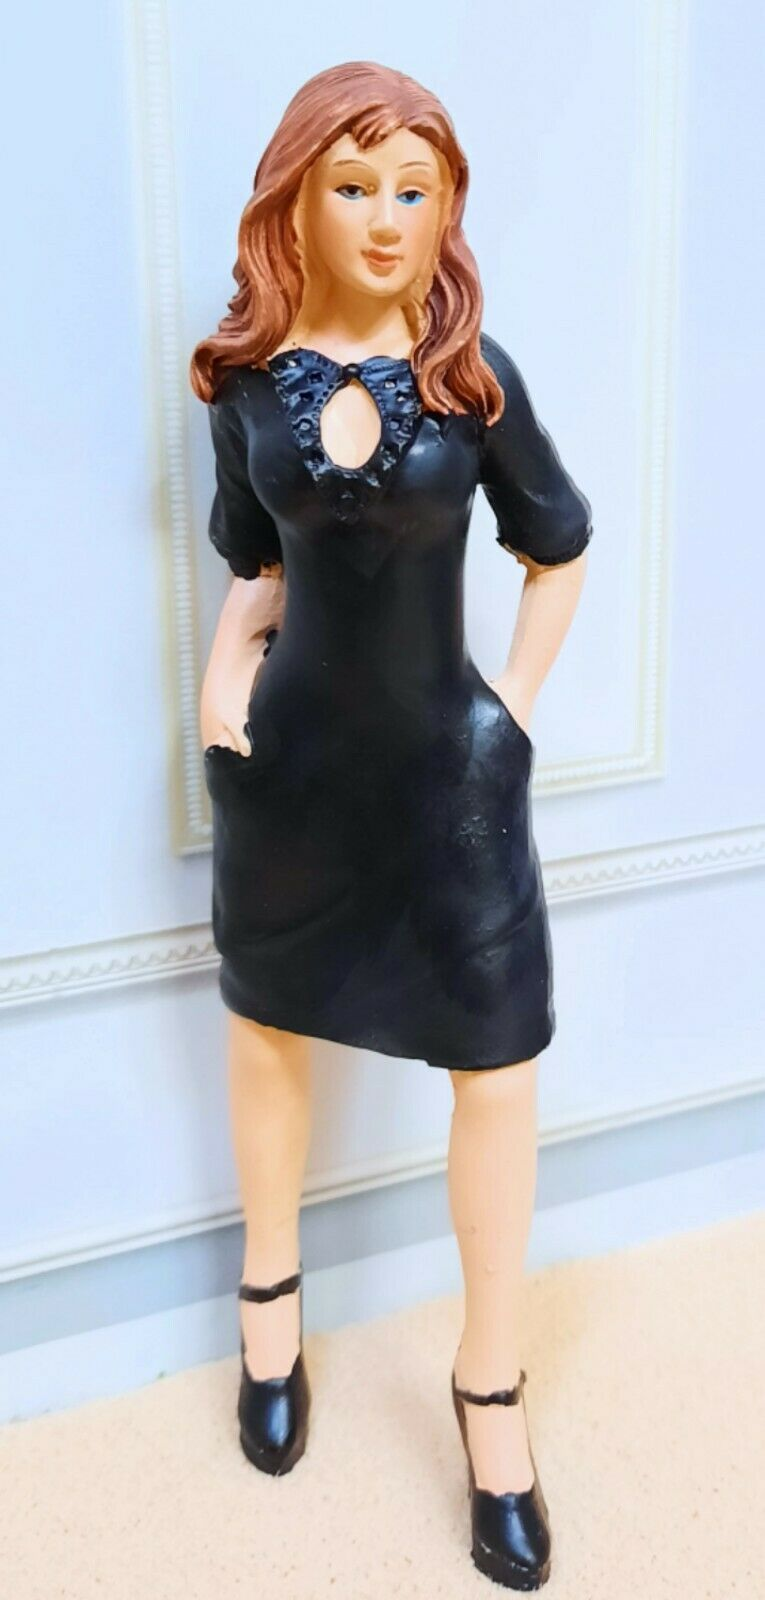 Dollhouse Miniature Resin Young Girl Doll in Black Dress & High Heels